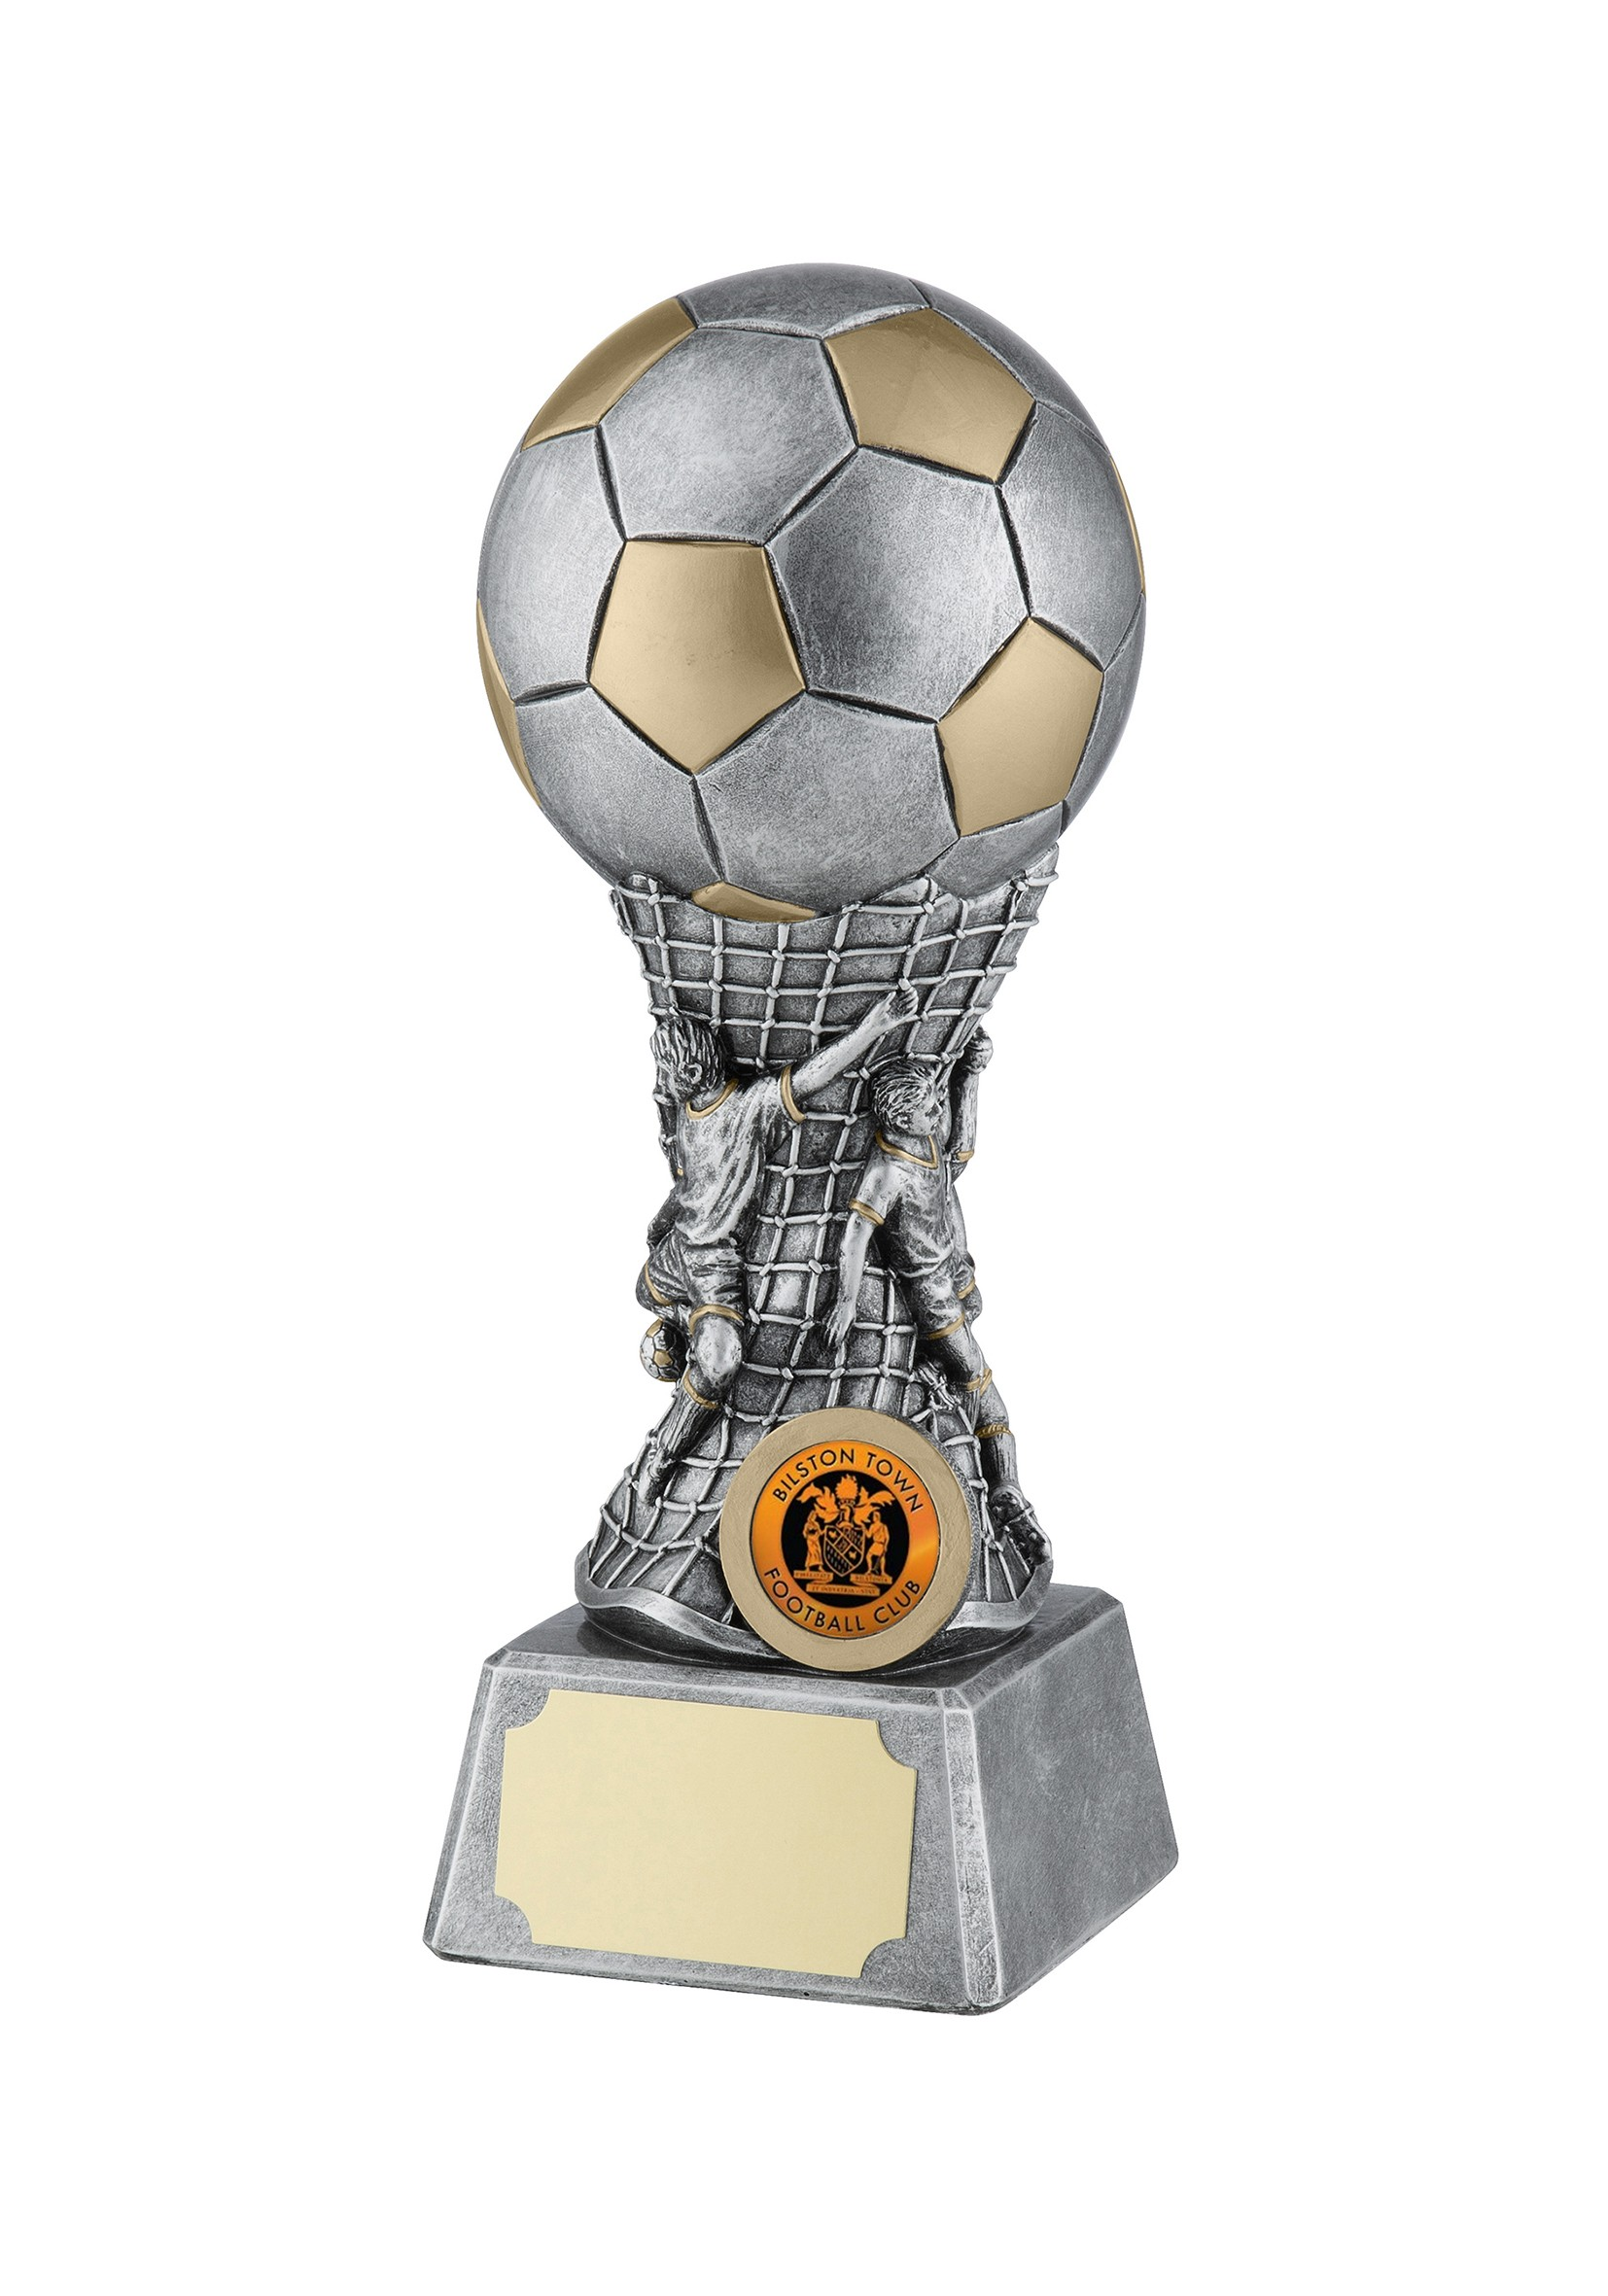 MB 15.5cm Football Award